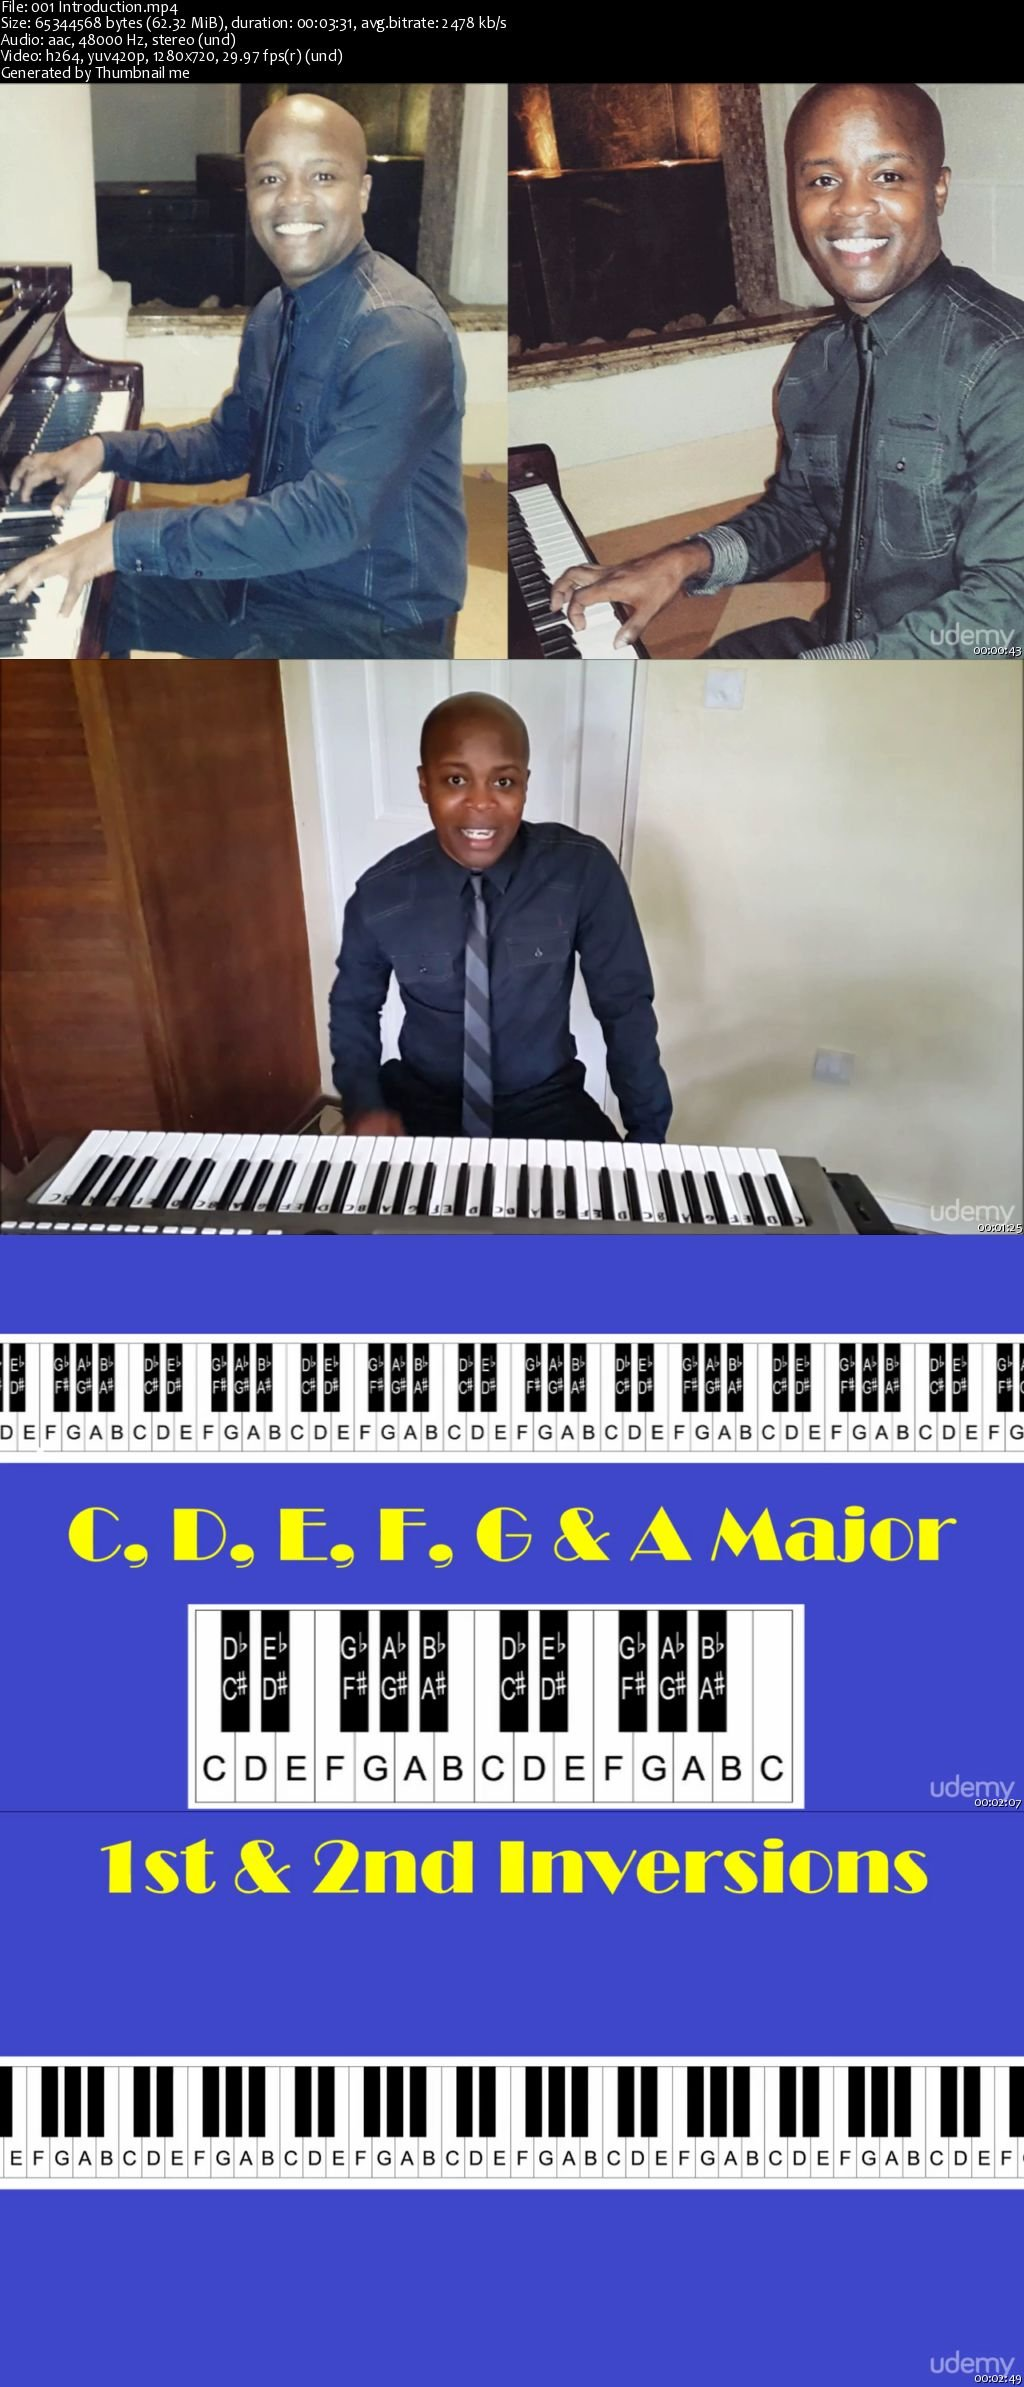 Piano Lessons - How To Play Piano The Fun, Fast & Easy Way